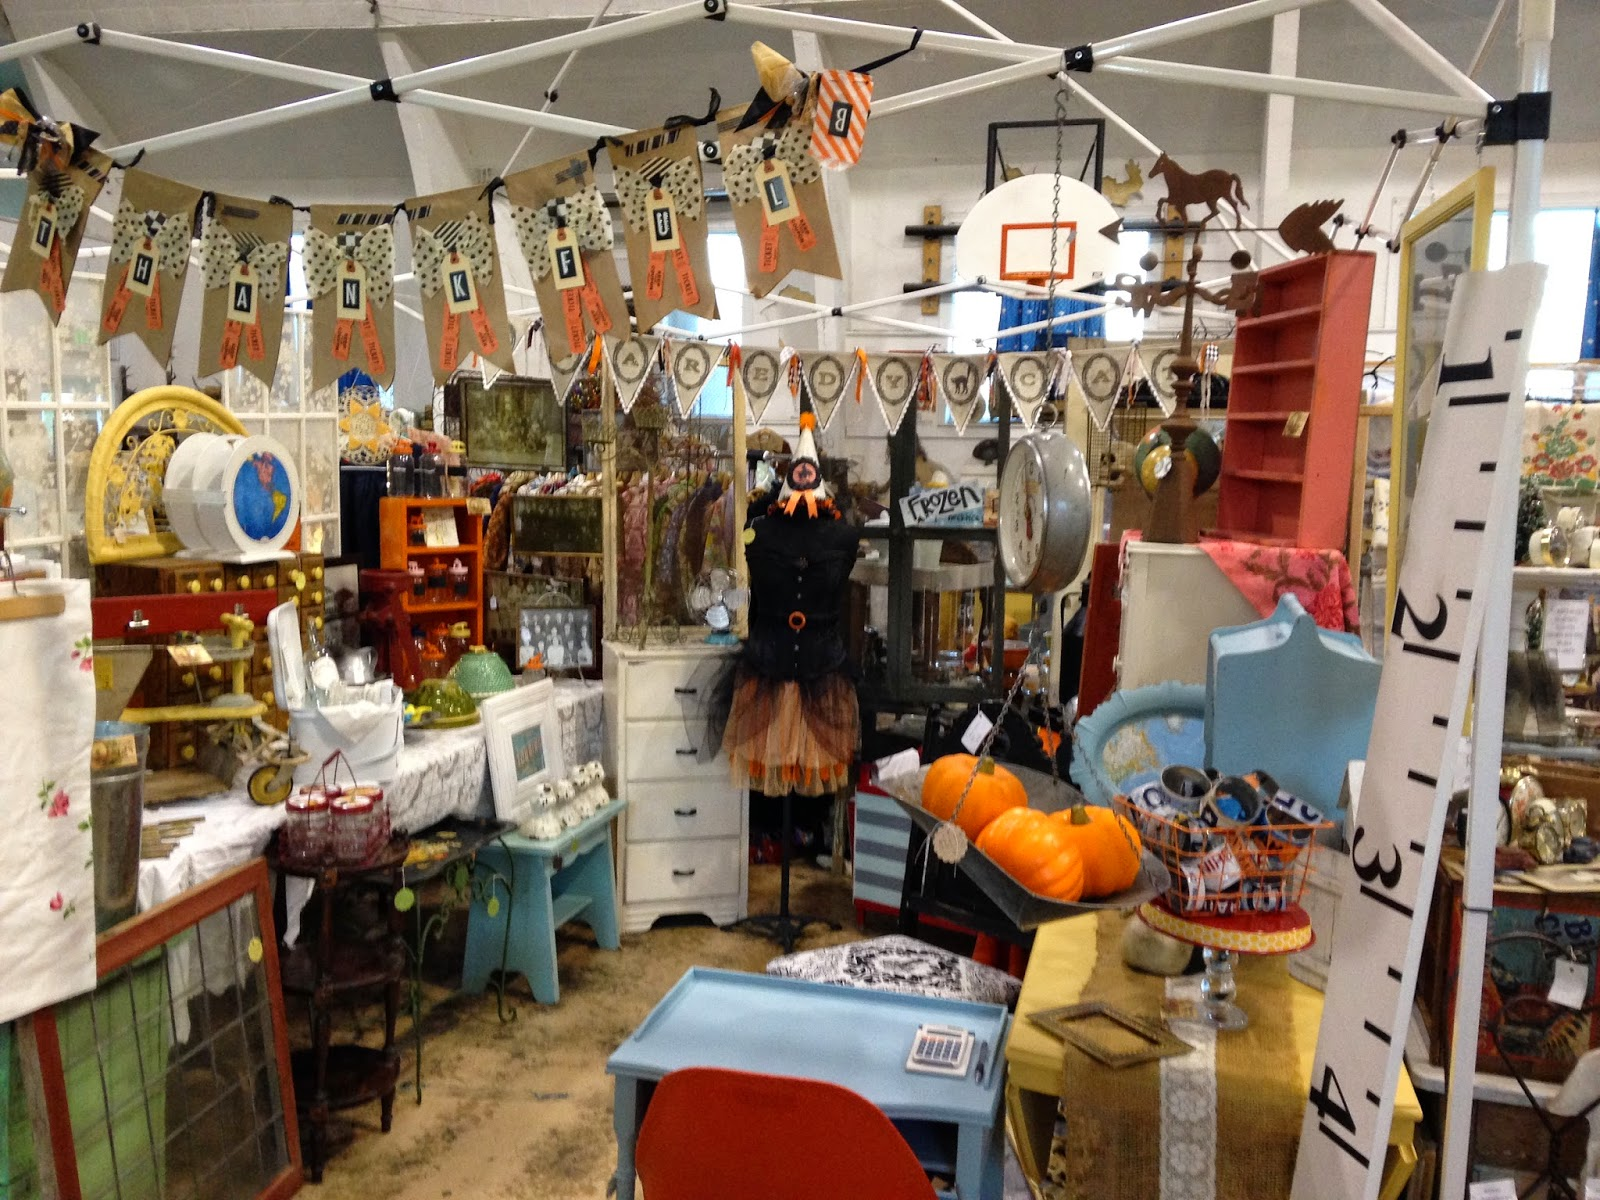 Pollyanna Reinvents: Great Vintage Booth Displays at 3